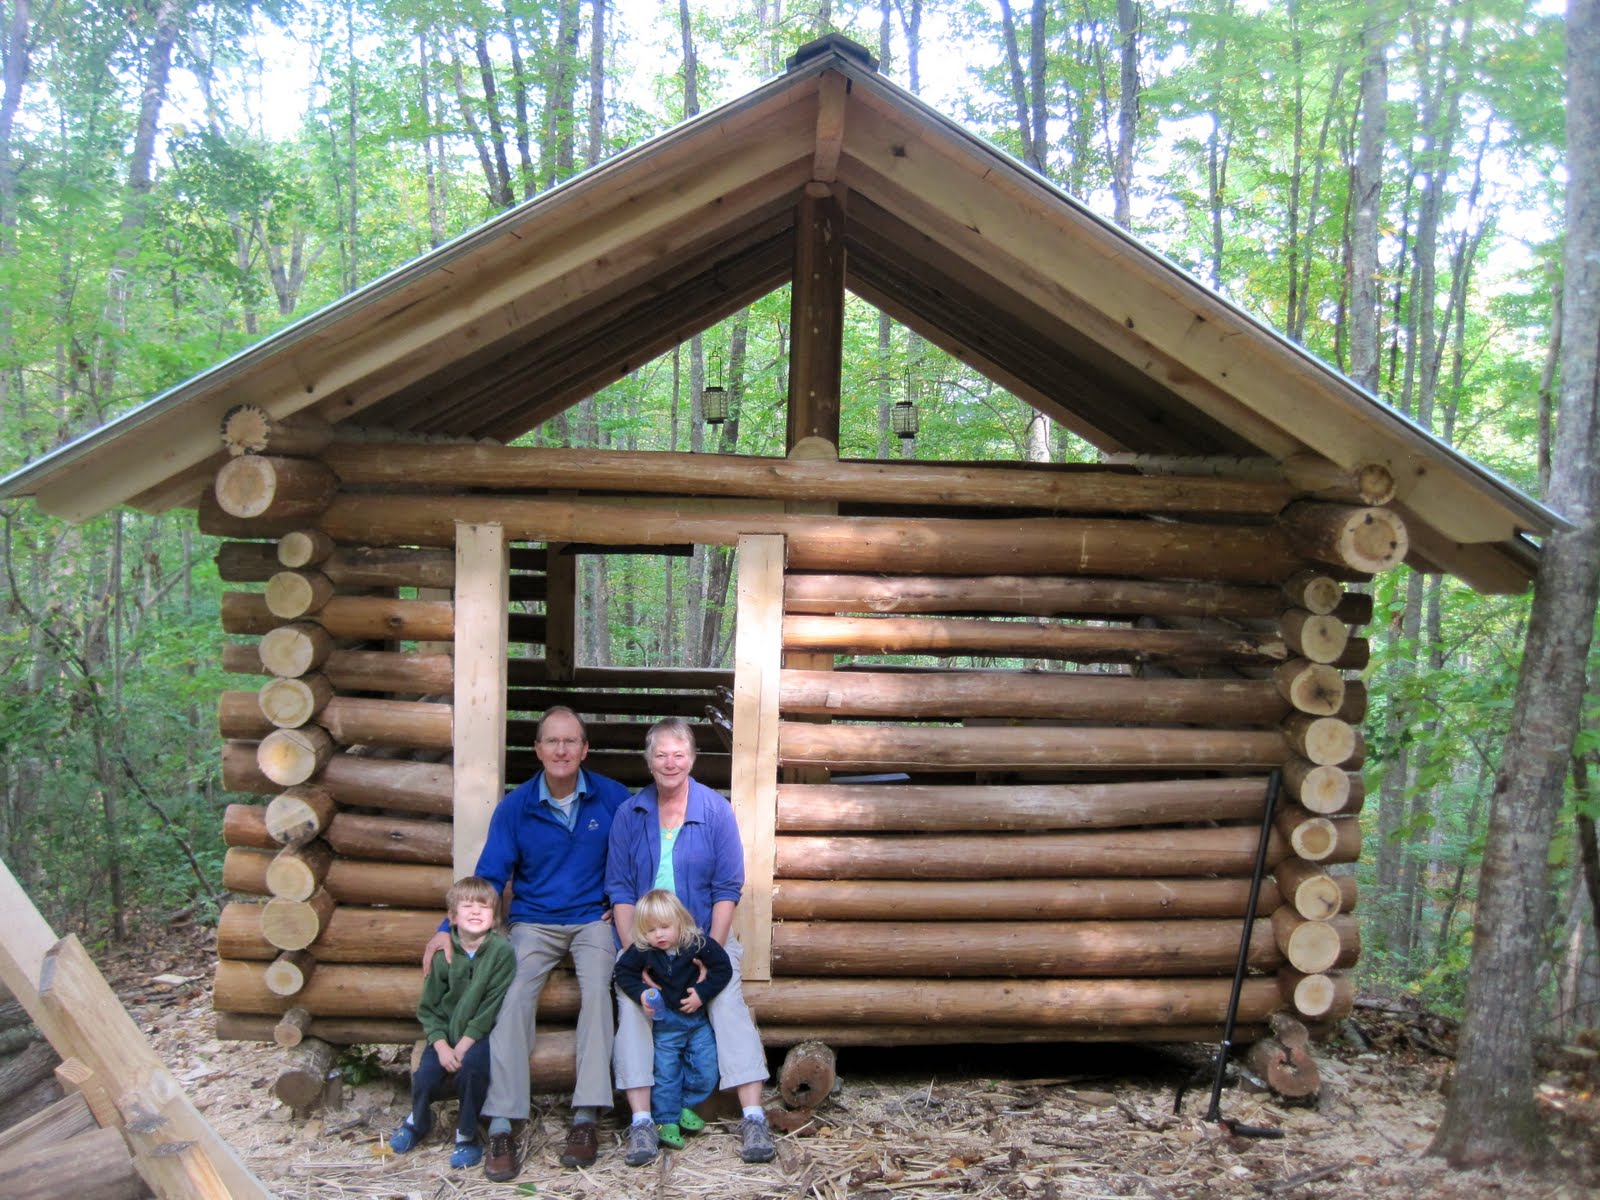 COLD HOLLER: A Postmodern (B)log Cabin In The Land Of The